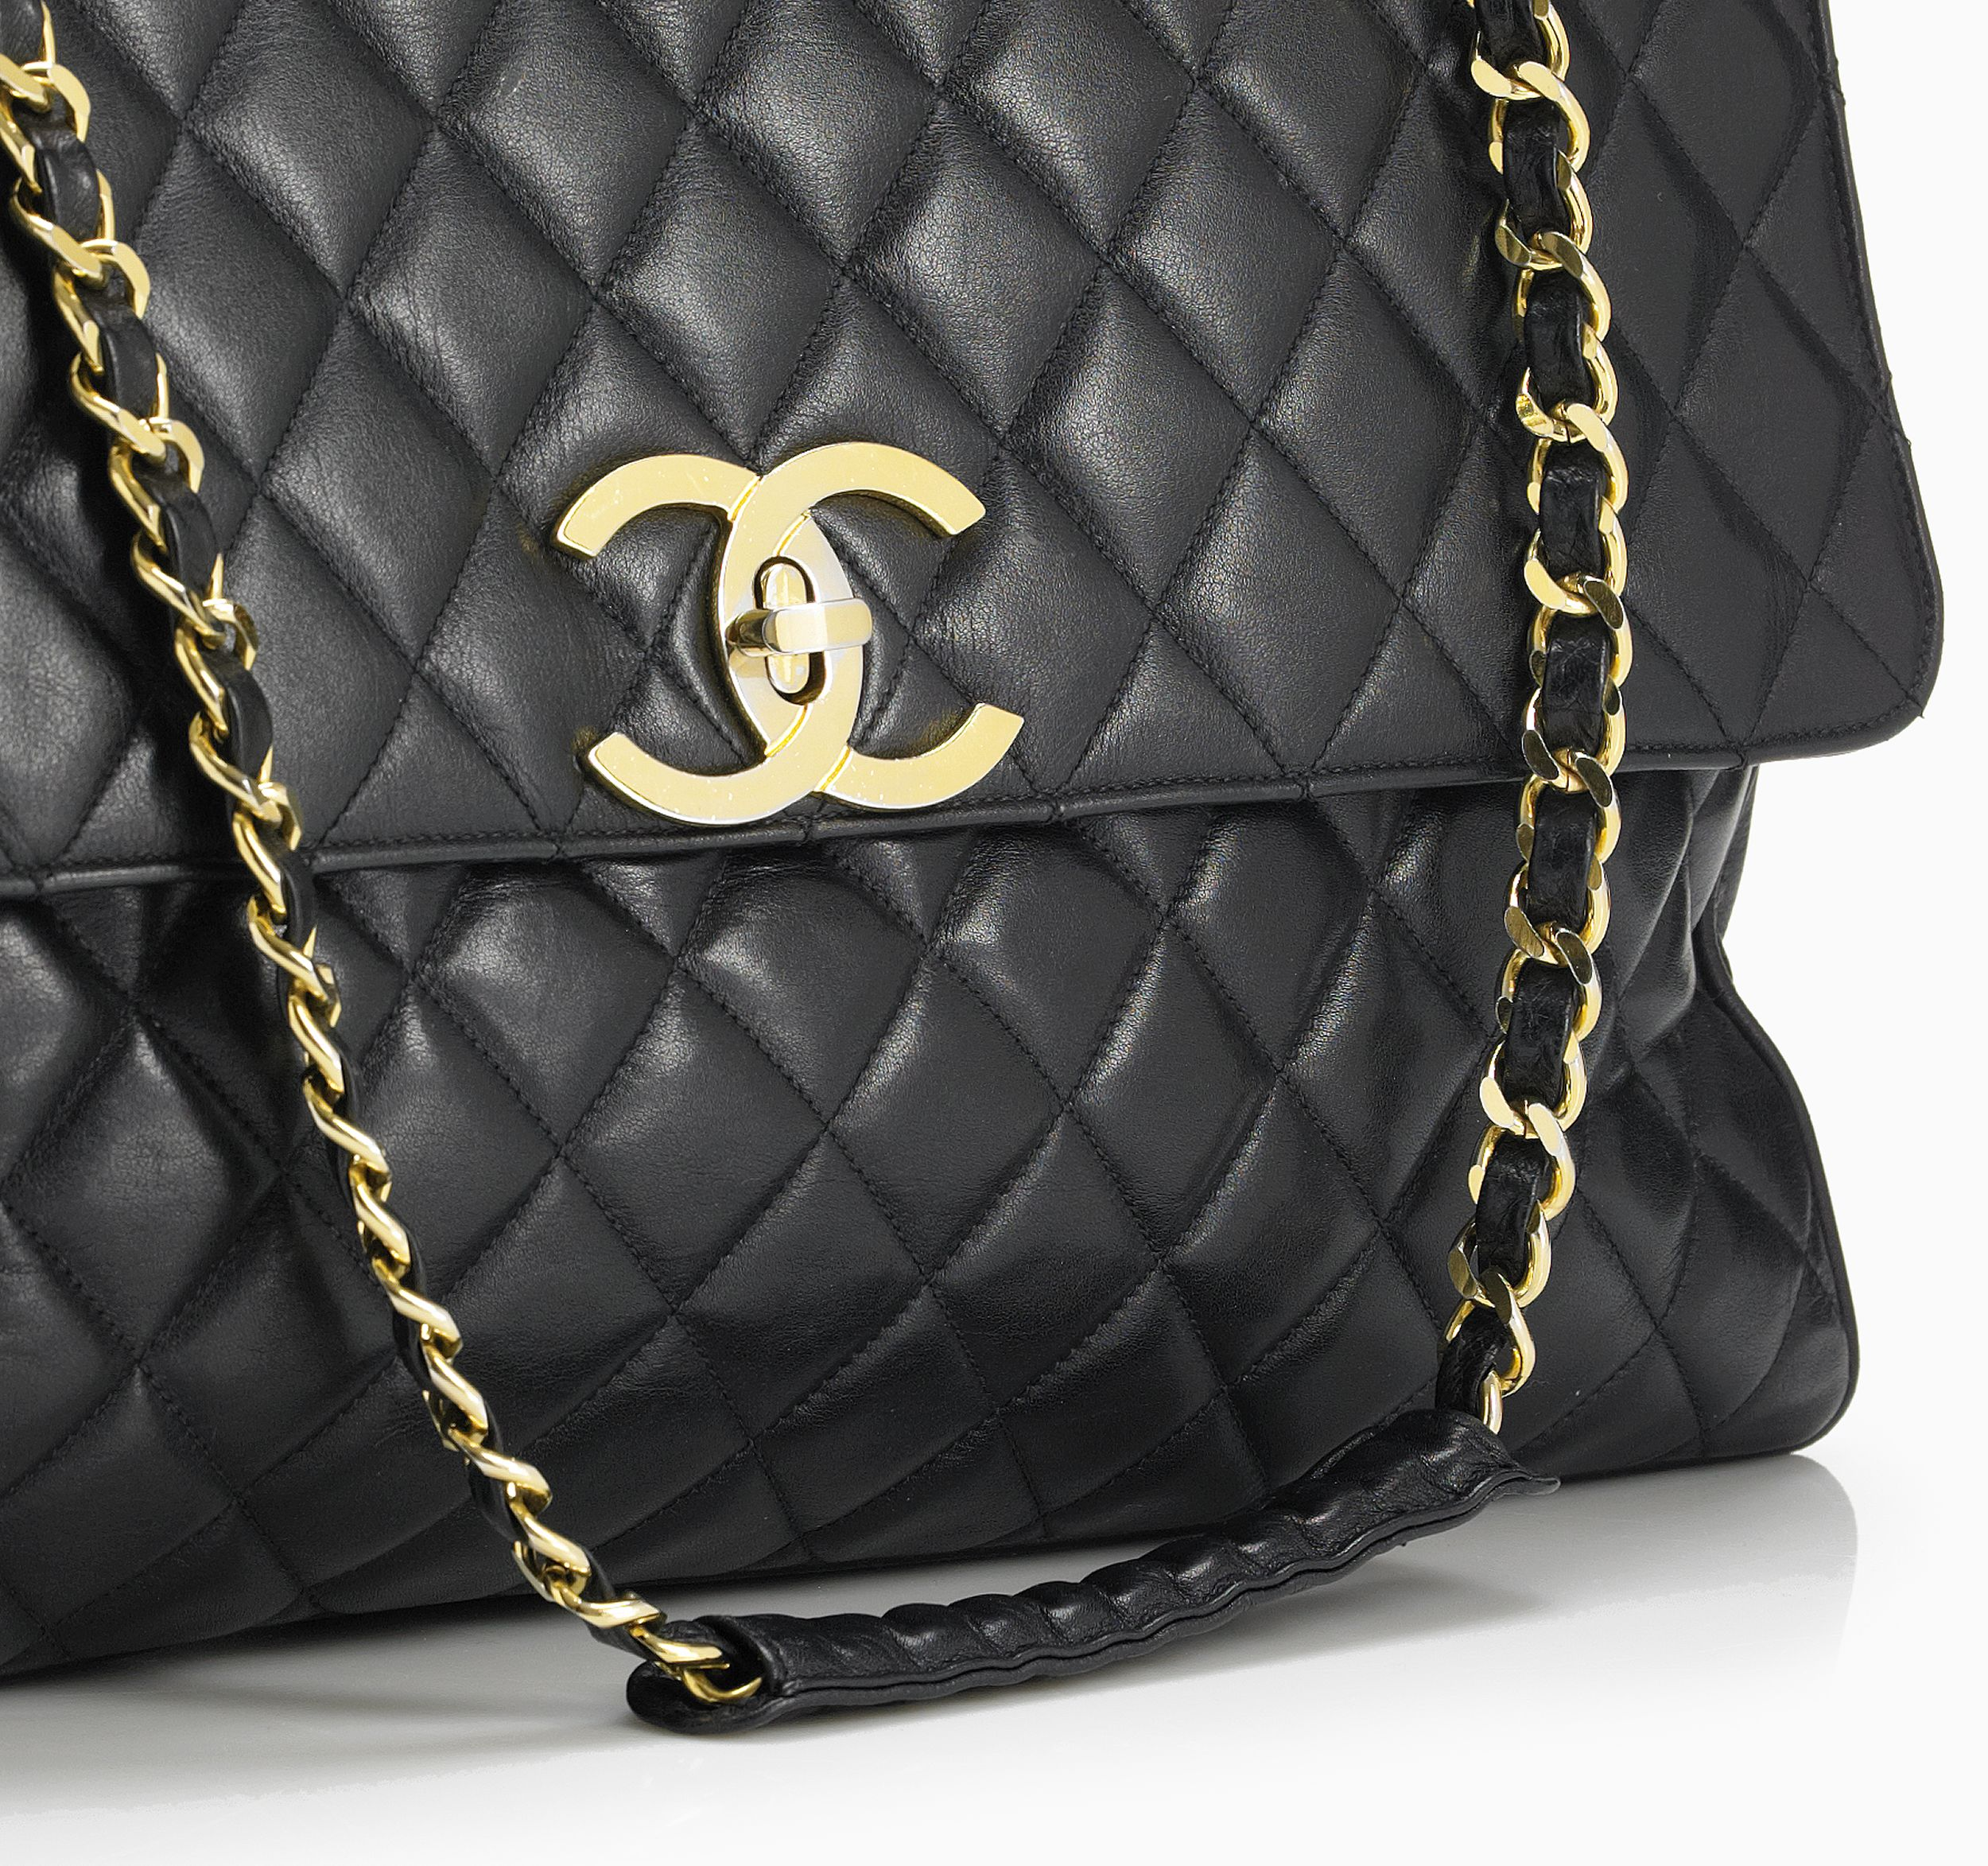 "Chanel, Paris, axelbandsväska ""Flap bag 2.55"""